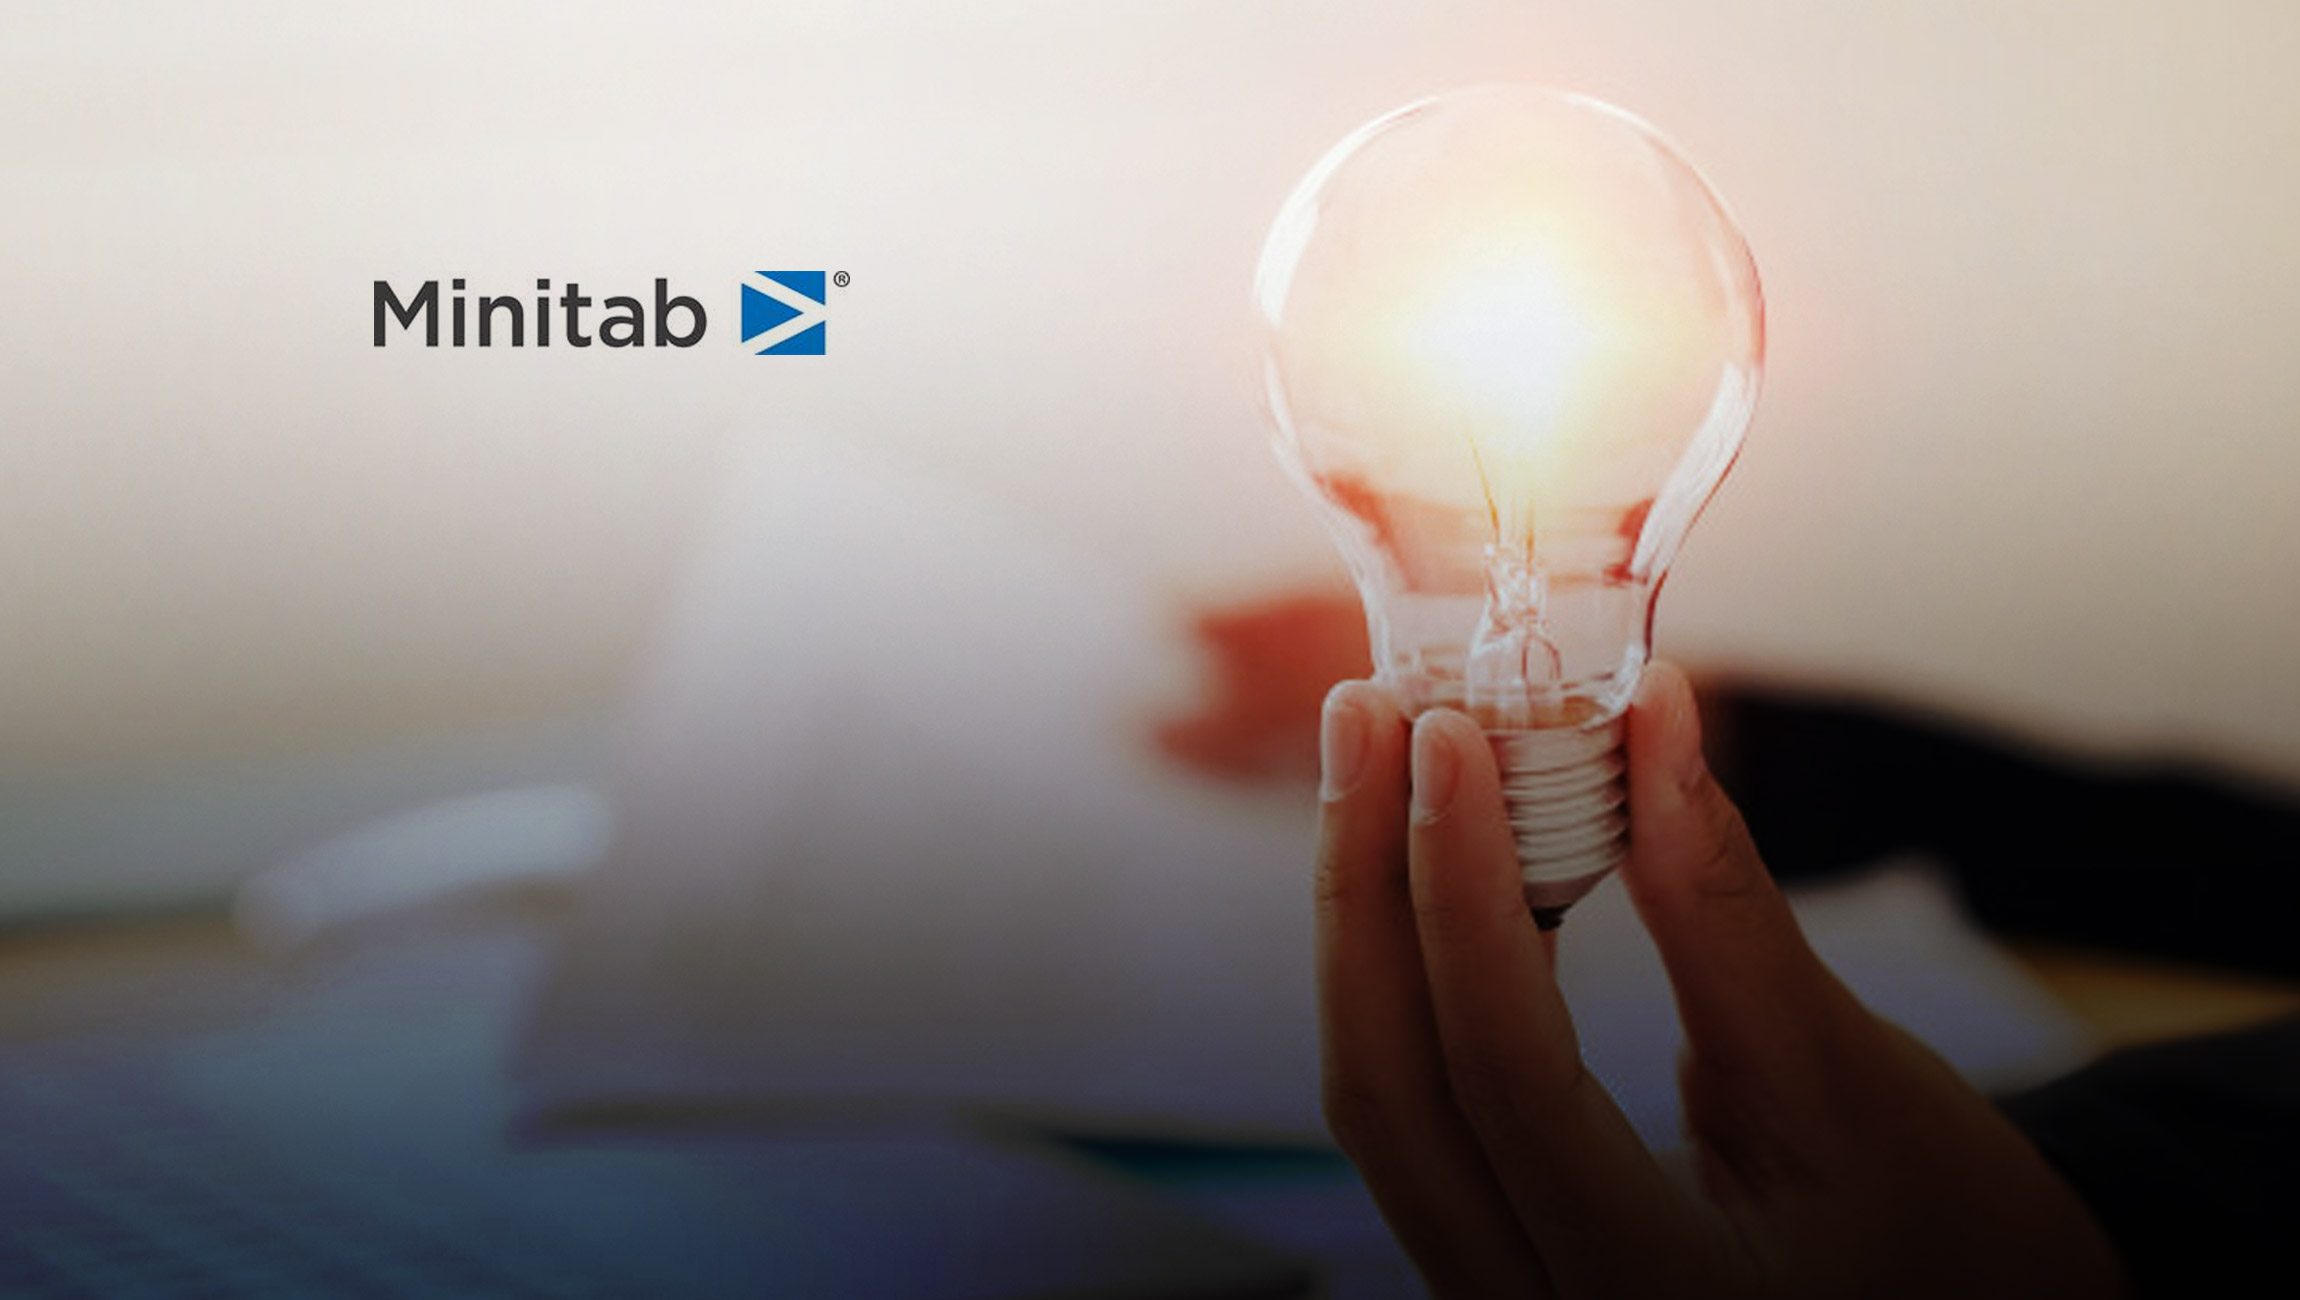 Minitab Launches New Solutions to Help Organizations Accelerate Digital Transformation